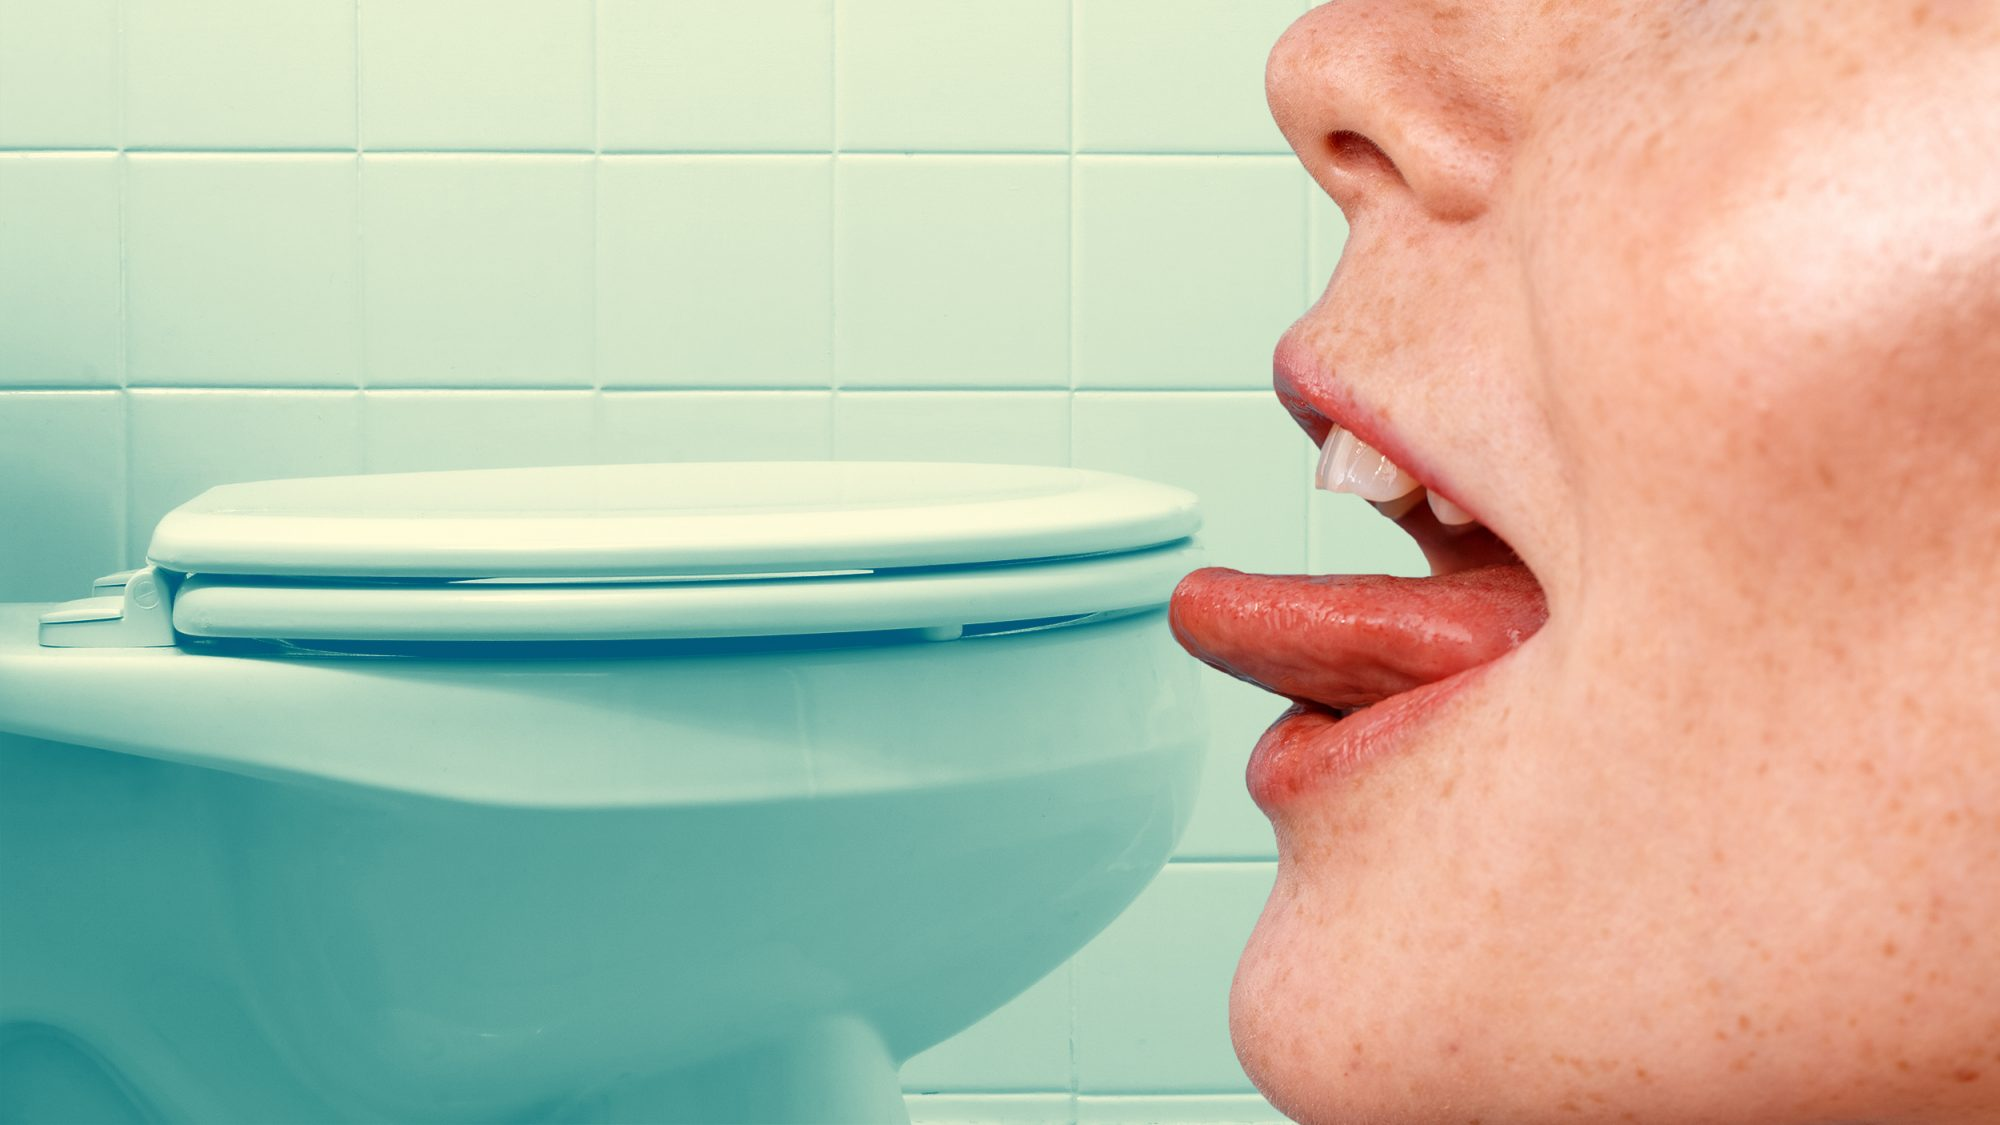 toilet-licking-covid-19 , toilet-licking , toilet , coronavirus, covid-19 , tongue , licking